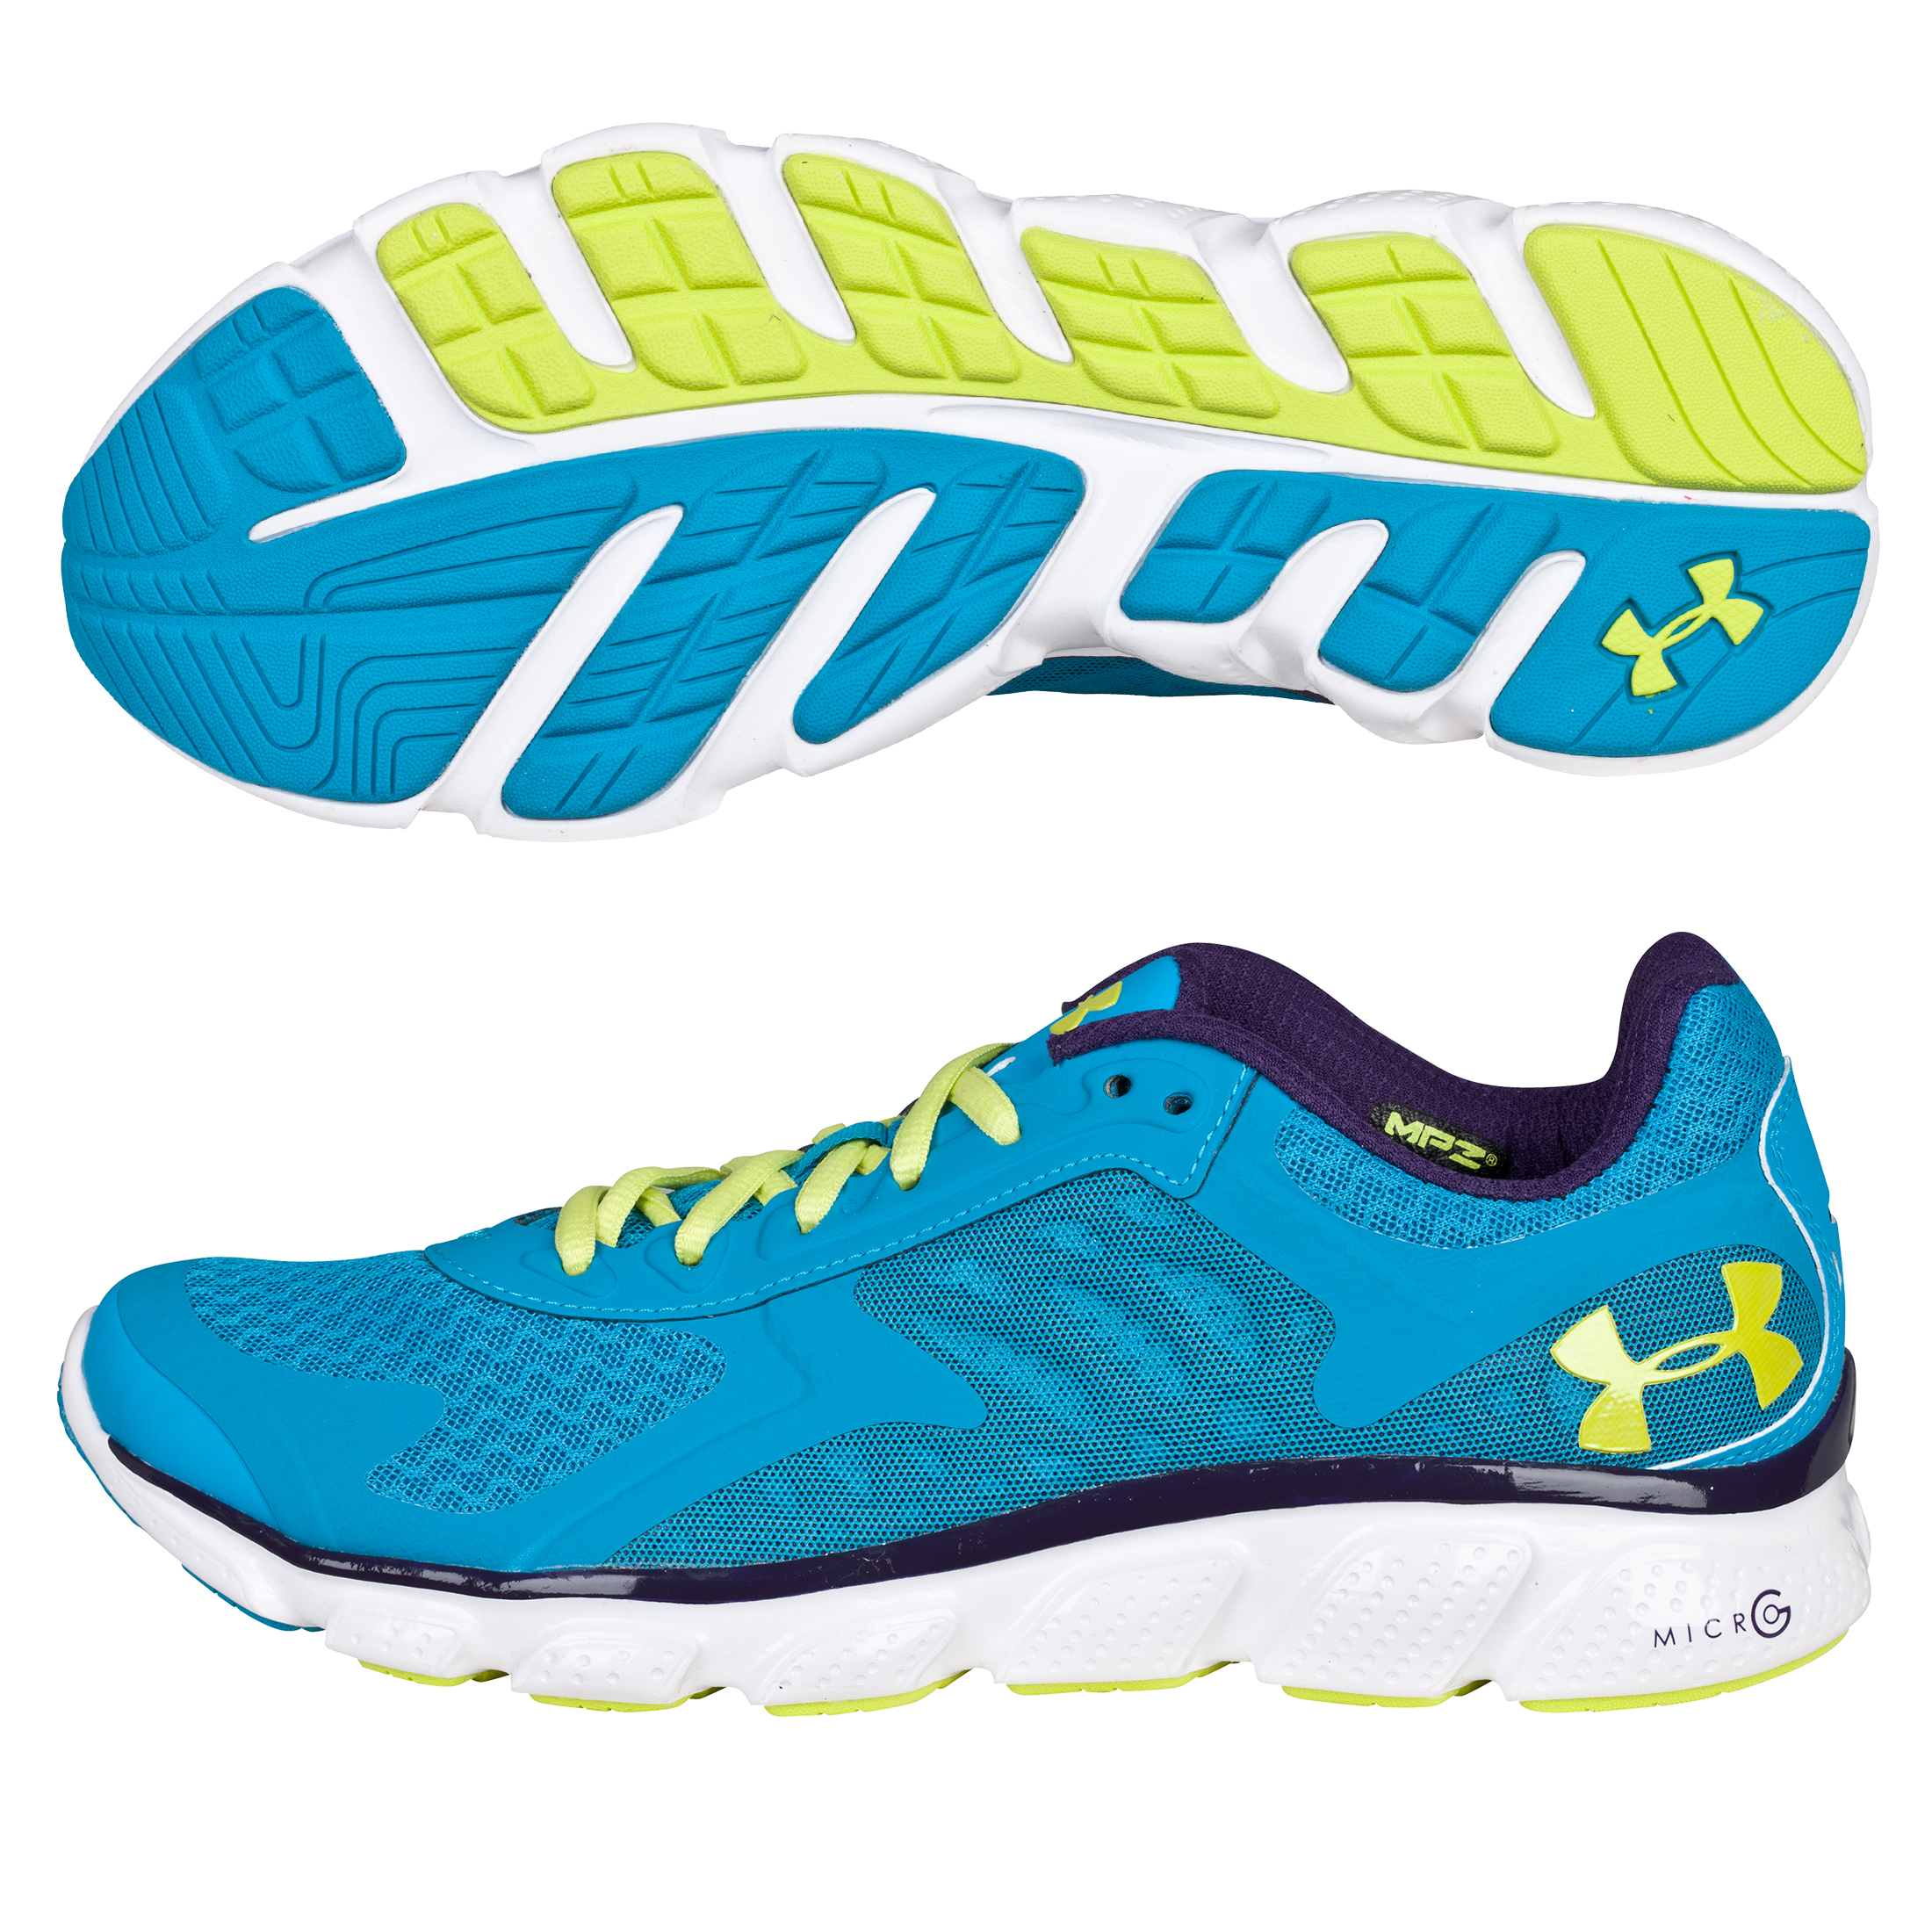 Under Armour Micro G Skulpt - Deceit/White - Womens